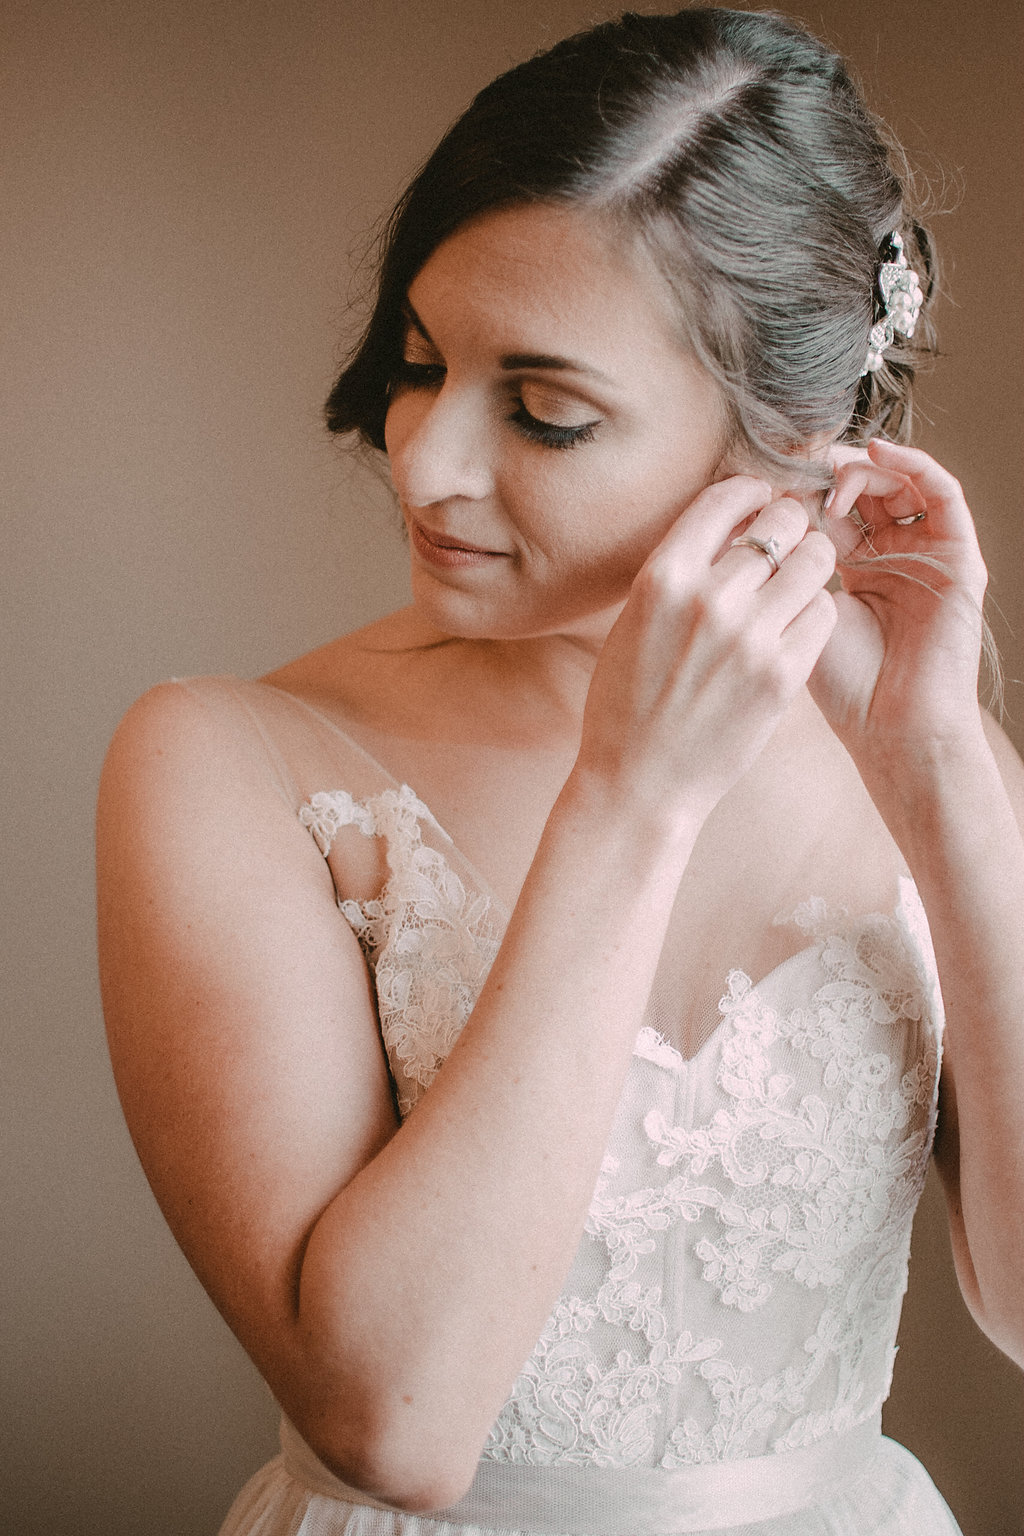 Bride putting on earrings in wedding dress